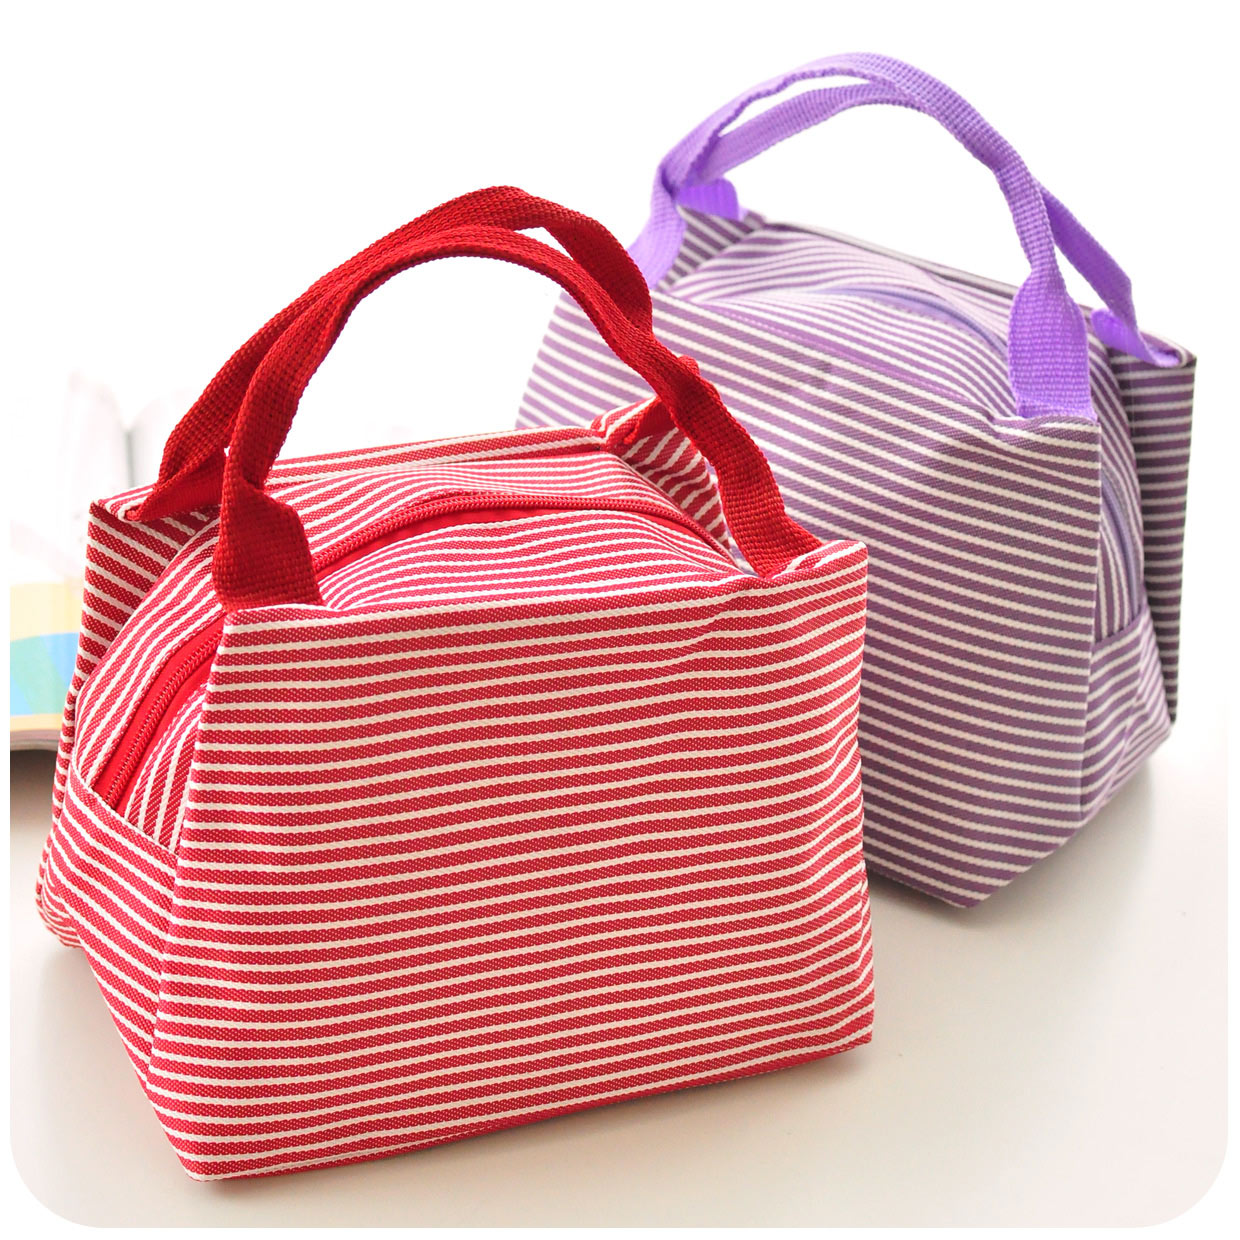 Waterproof Stripe Lunch Bag High Quality Fabric Tote For Women Kids In Bags From Luggage On Aliexpress Alibaba